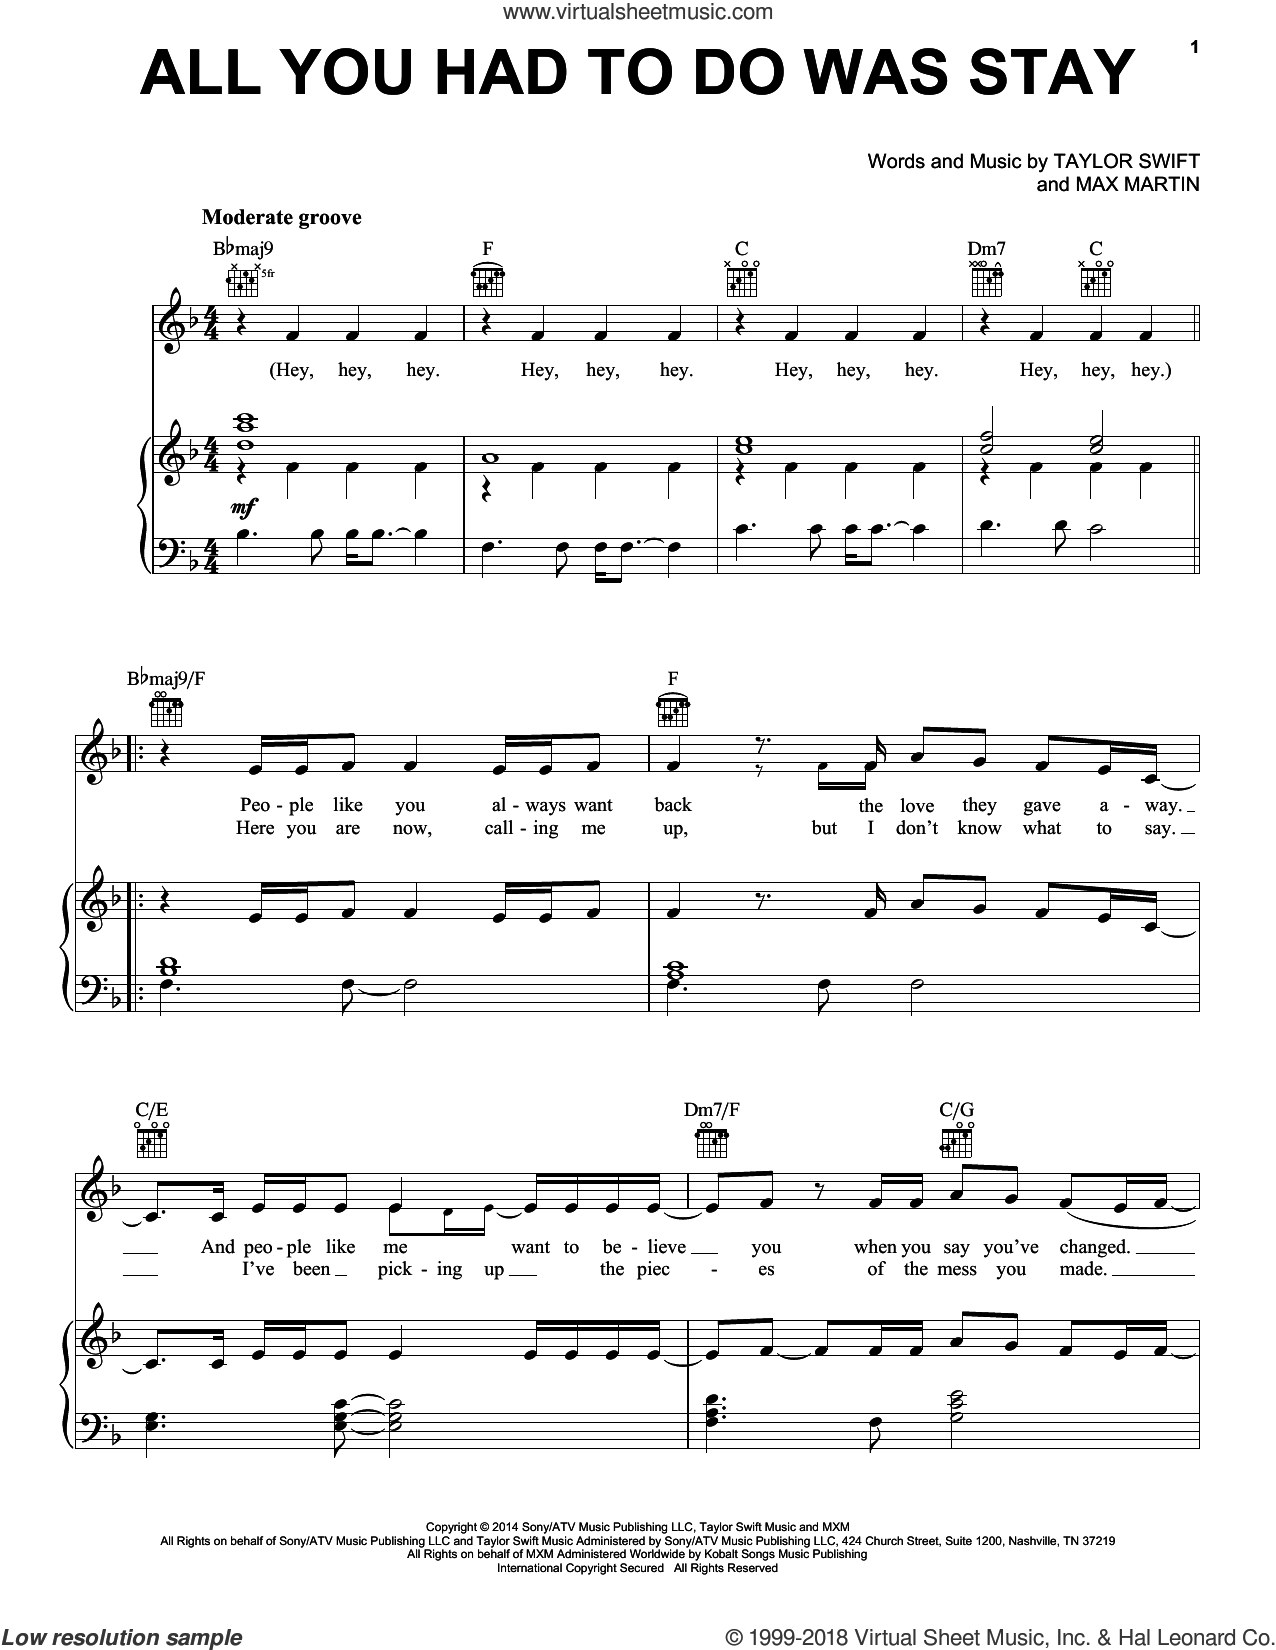 All You Had To Do Was Stay sheet music for voice, piano or guitar by Taylor Swift and Max Martin, intermediate skill level